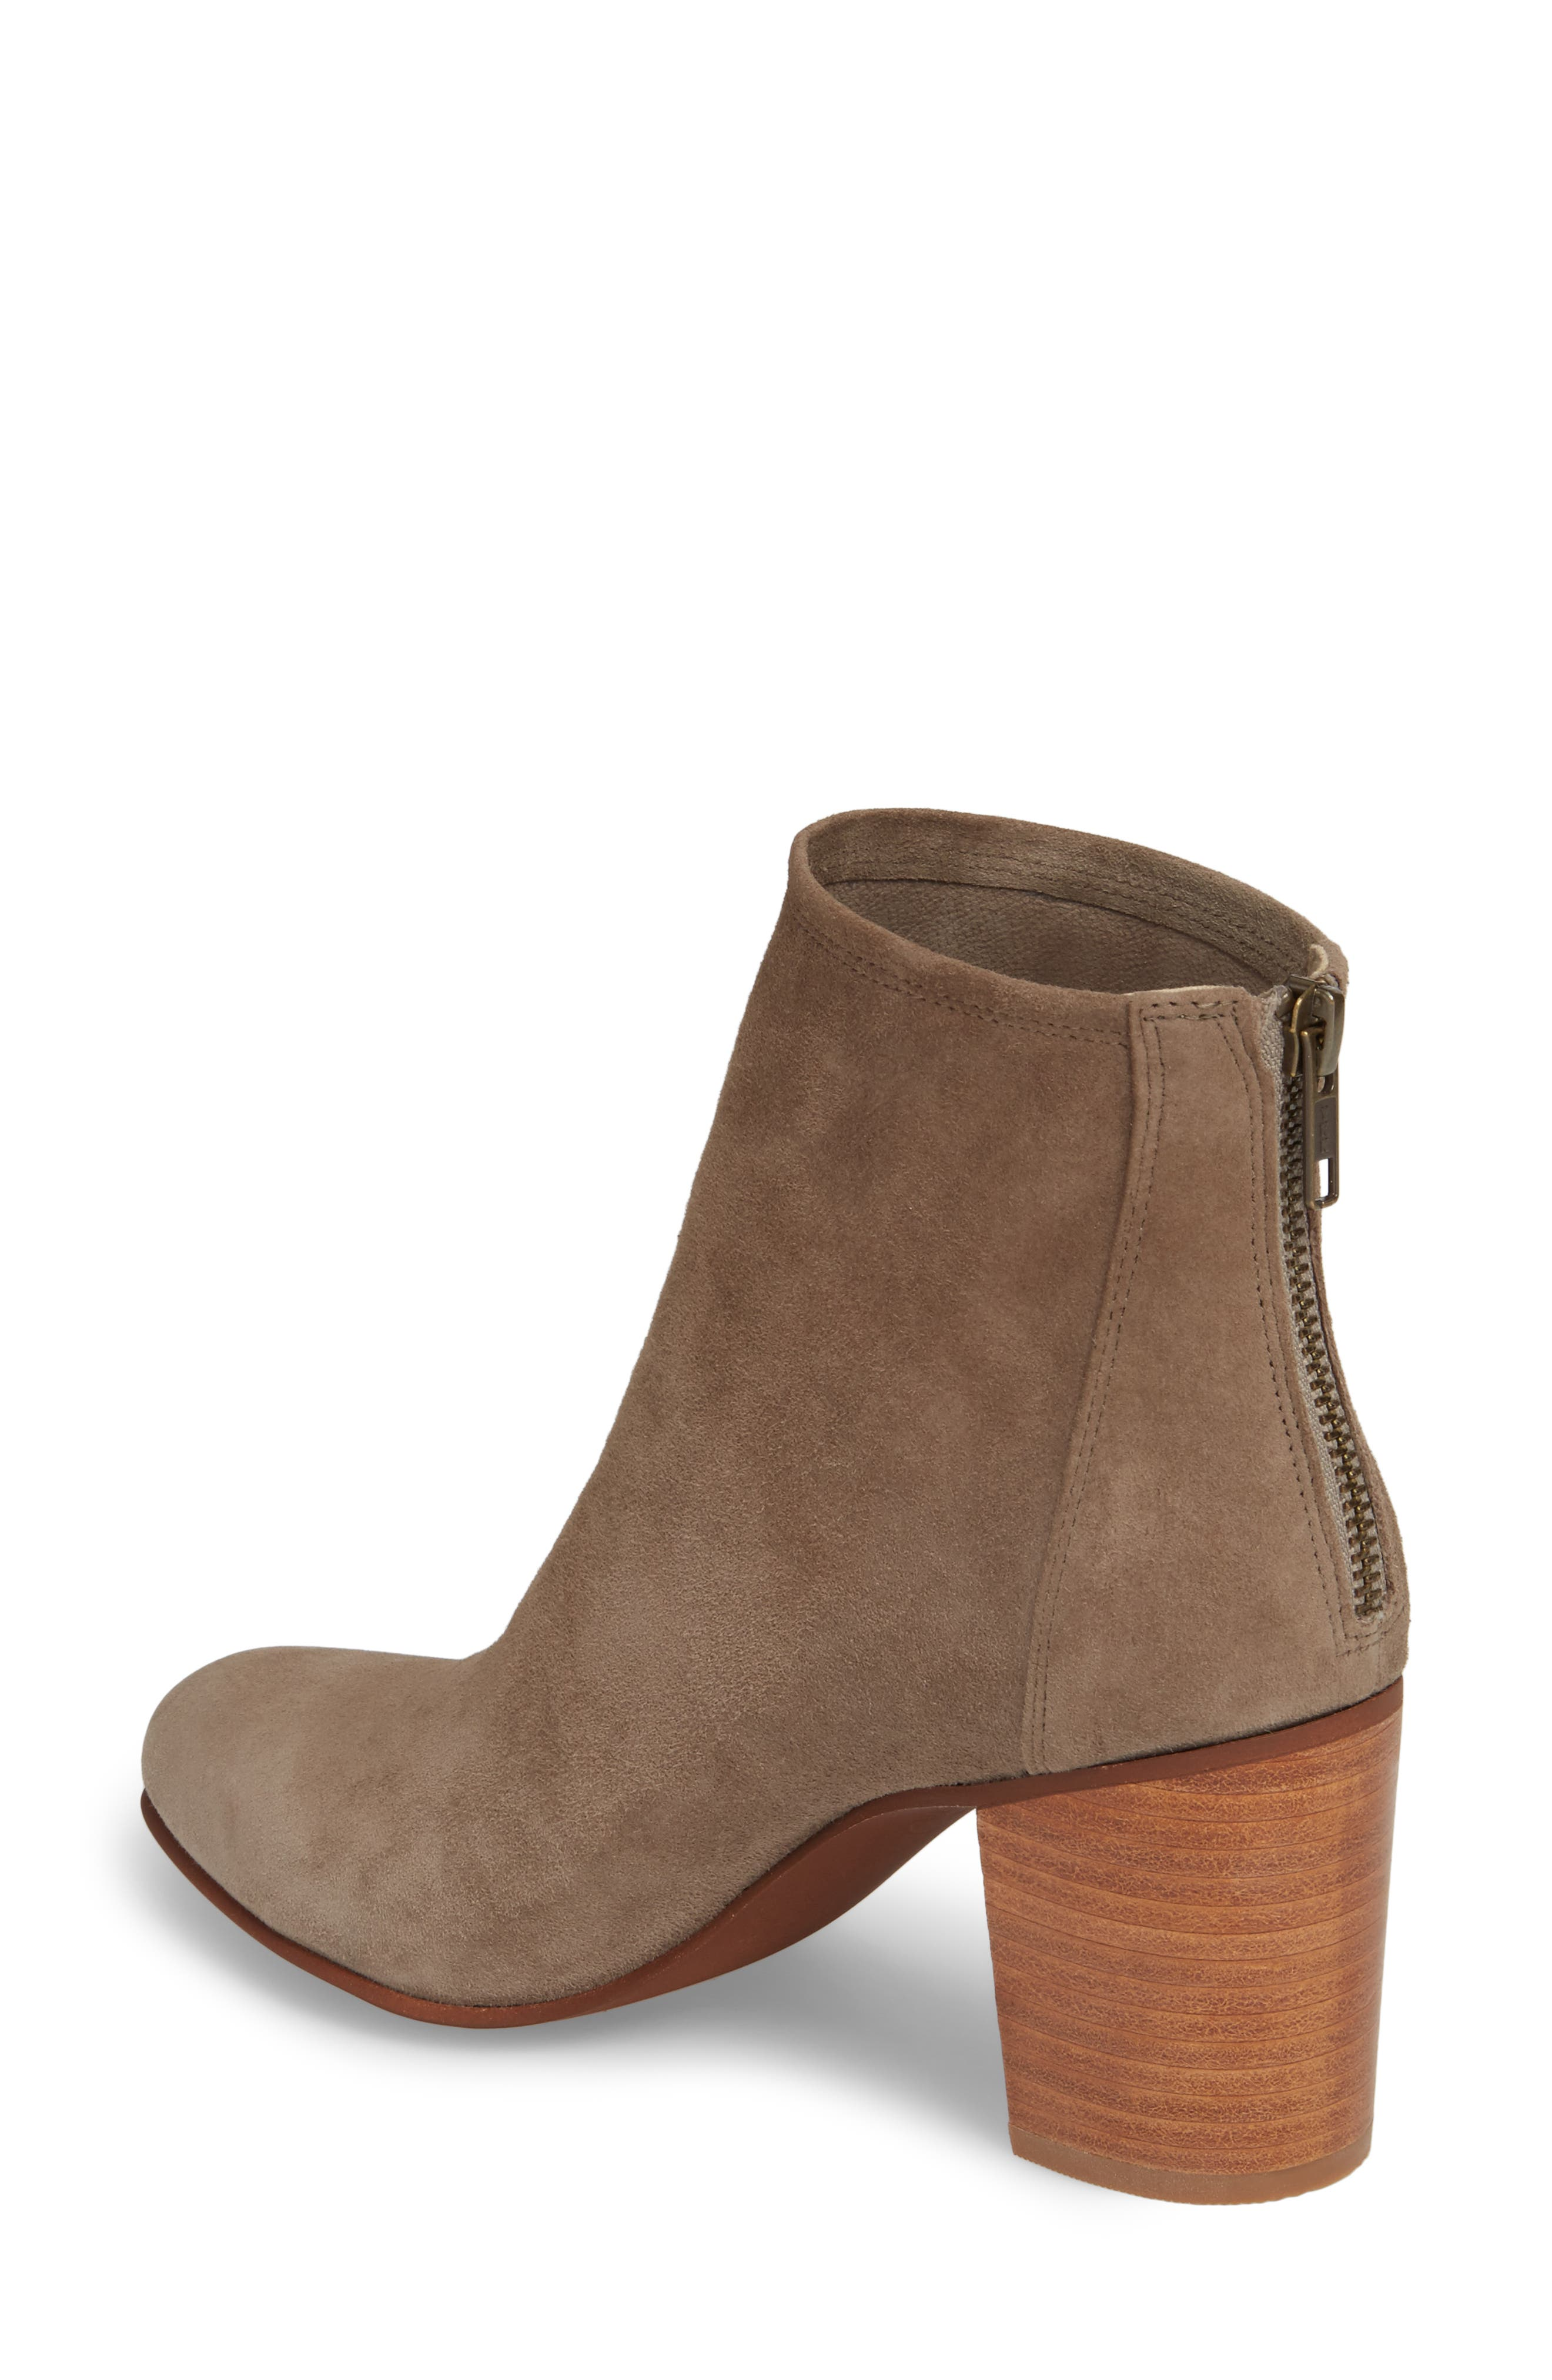 Tawny Bootie,                             Alternate thumbnail 2, color,                             GREY SUEDE